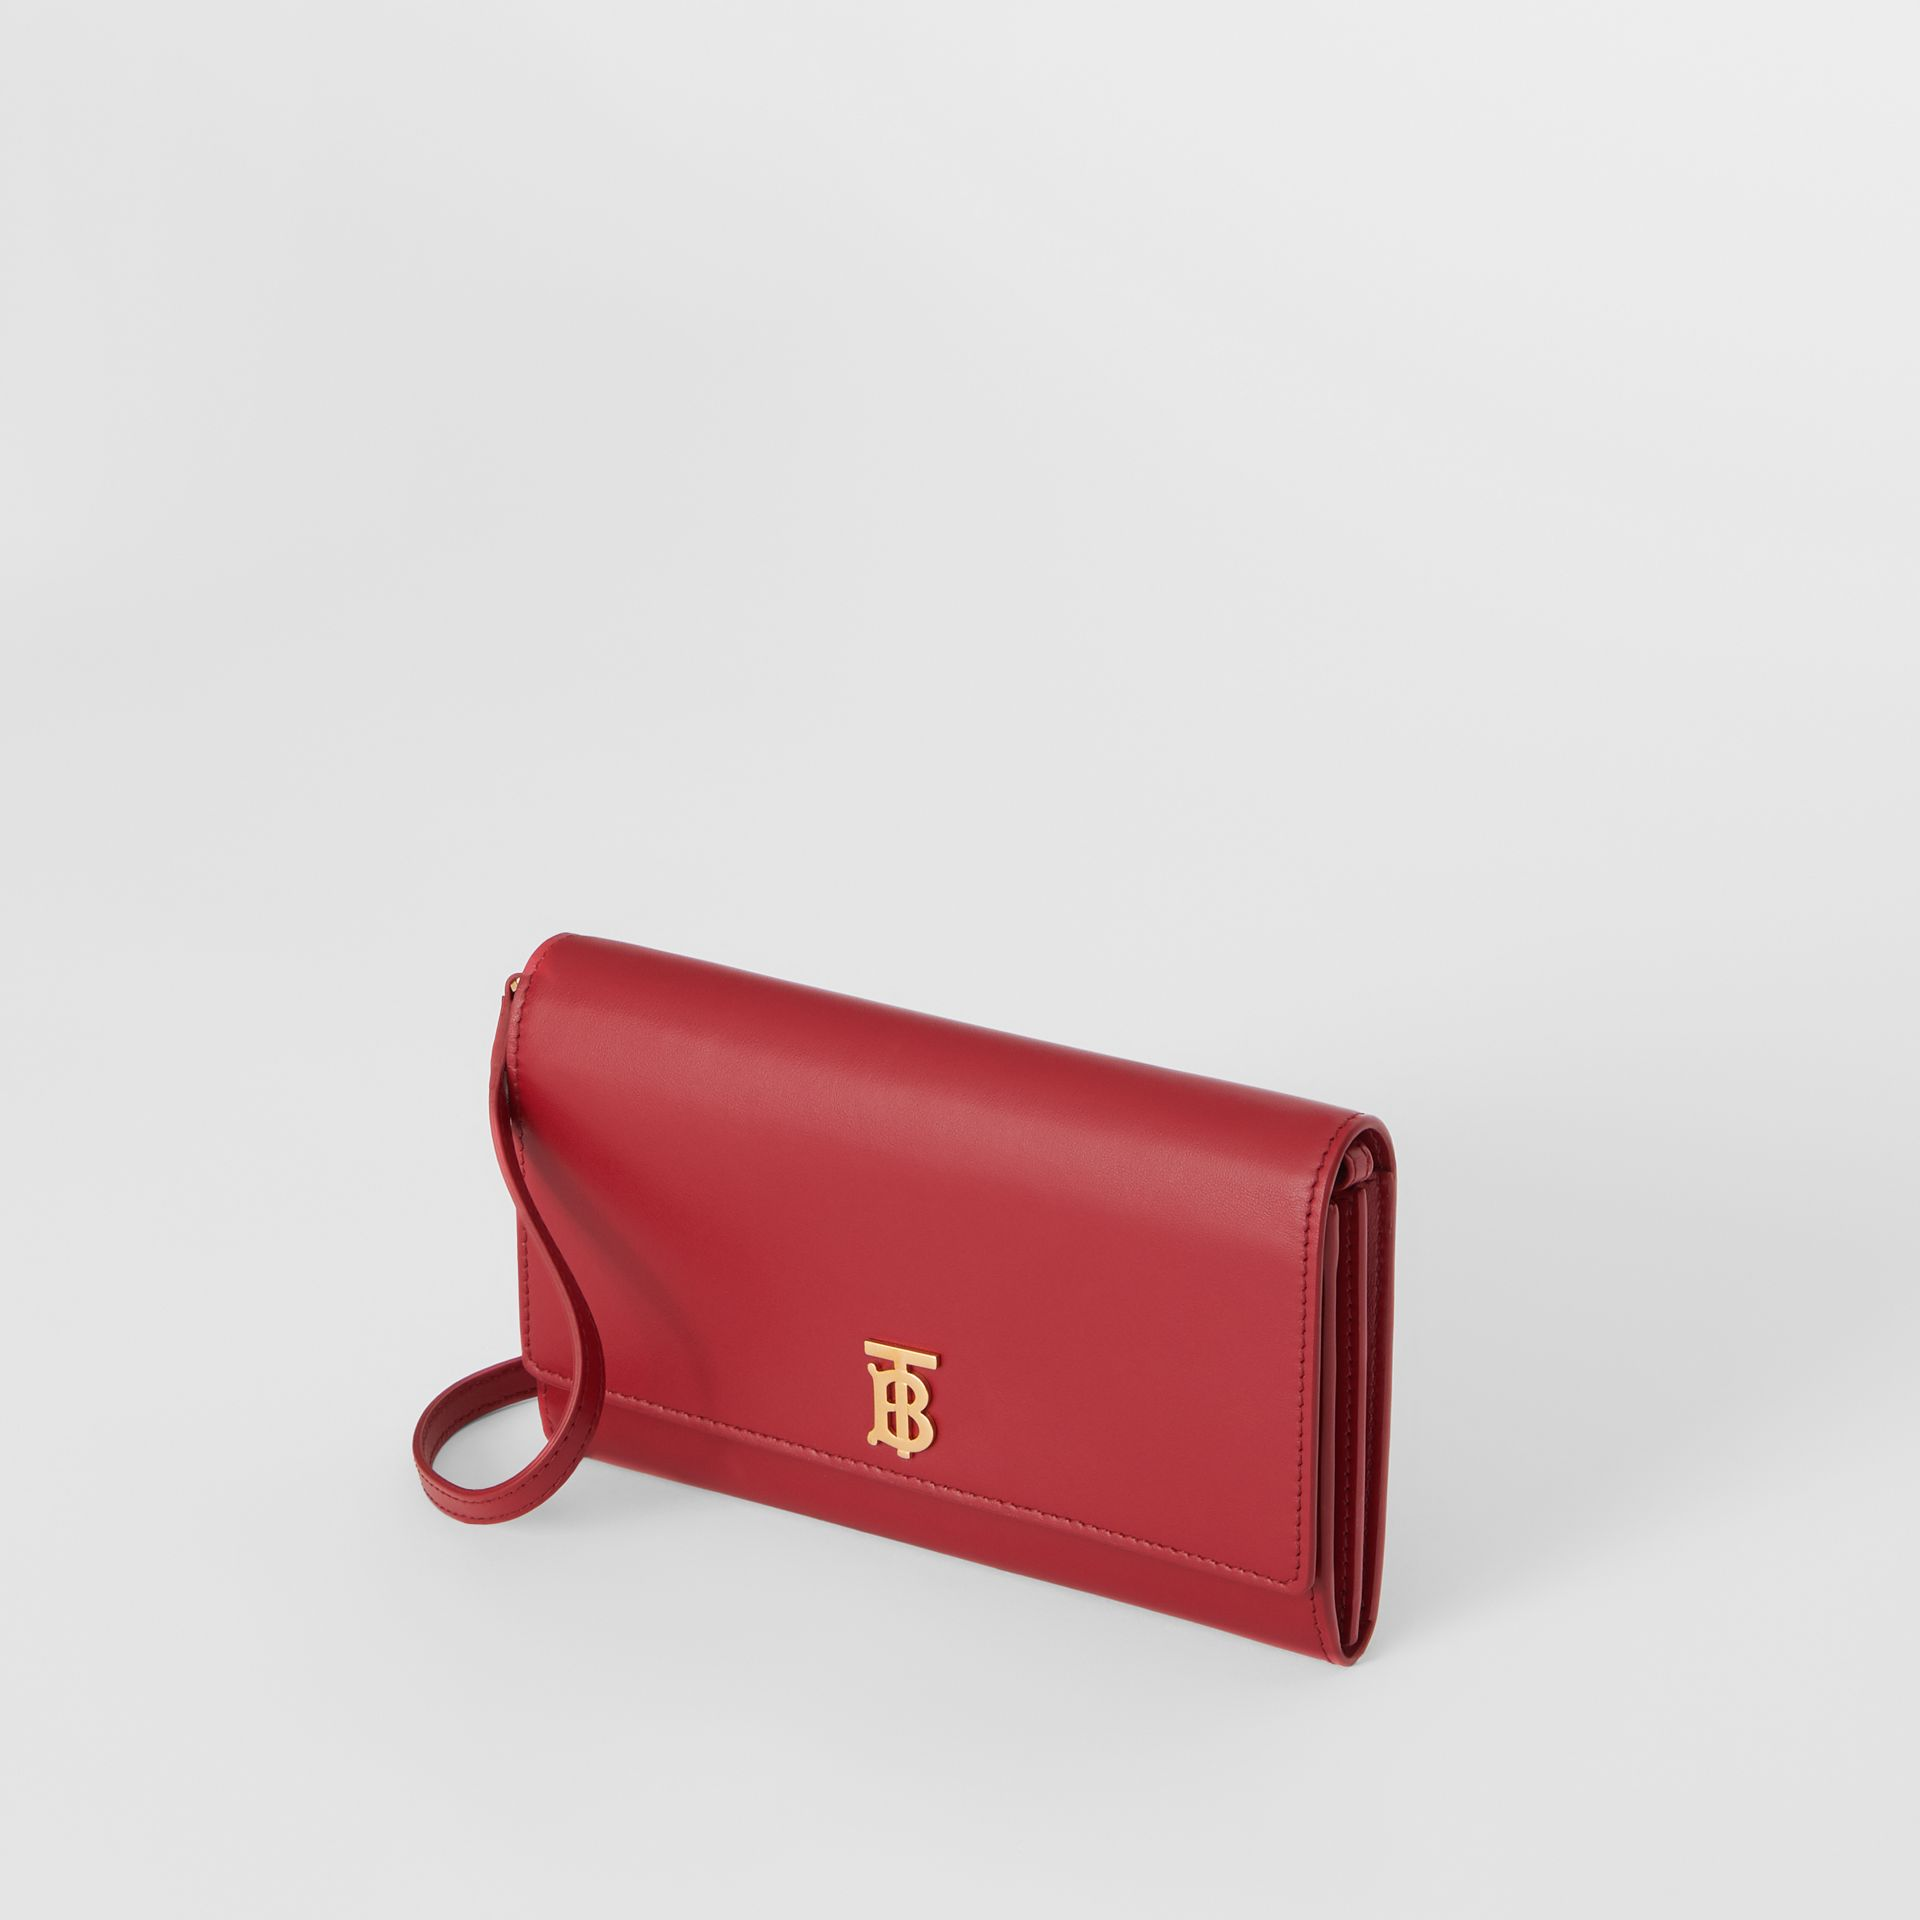 Monogram Motif Leather Wallet with Detachable Strap in Crimson - Women | Burberry - gallery image 3